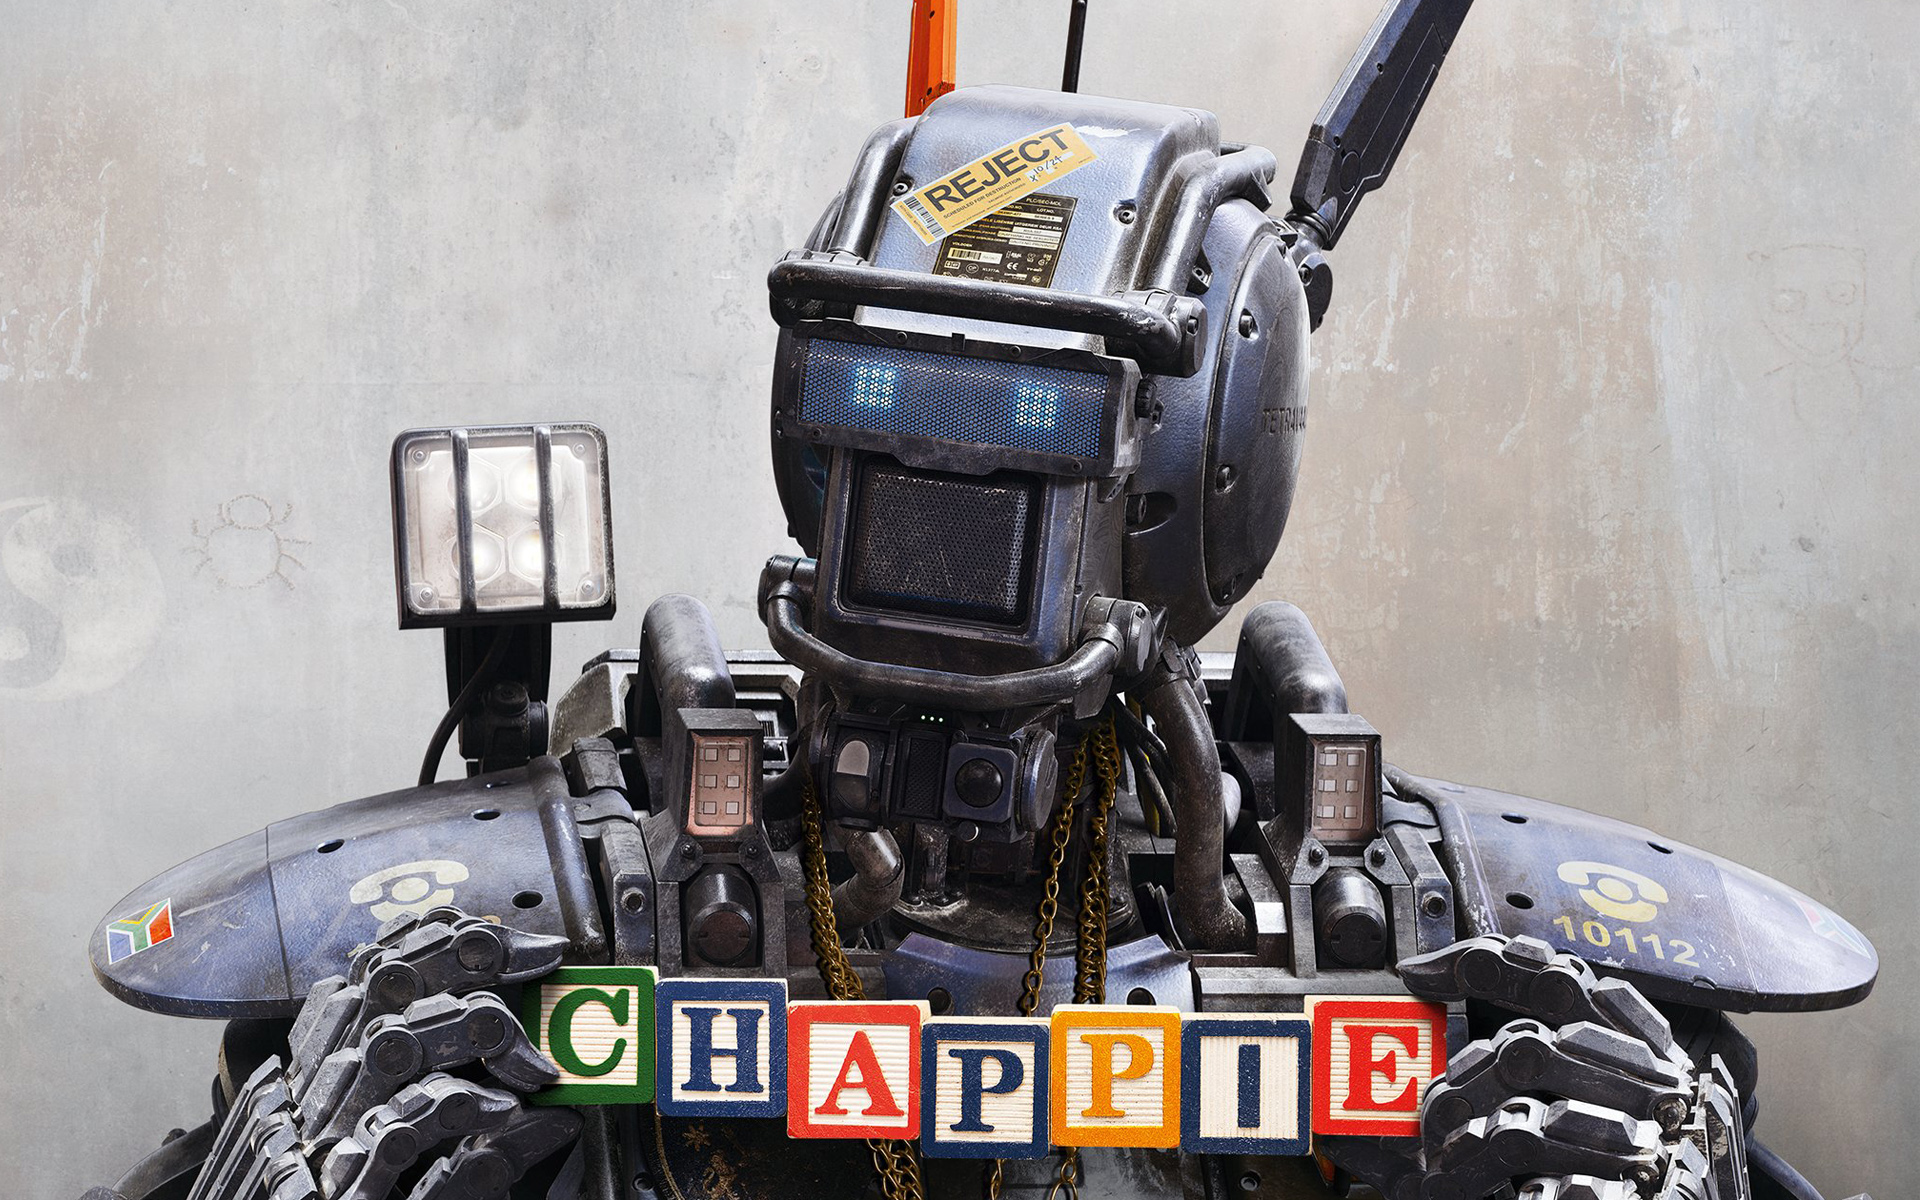 Chappie 2015 Movie 1080.91 Kb